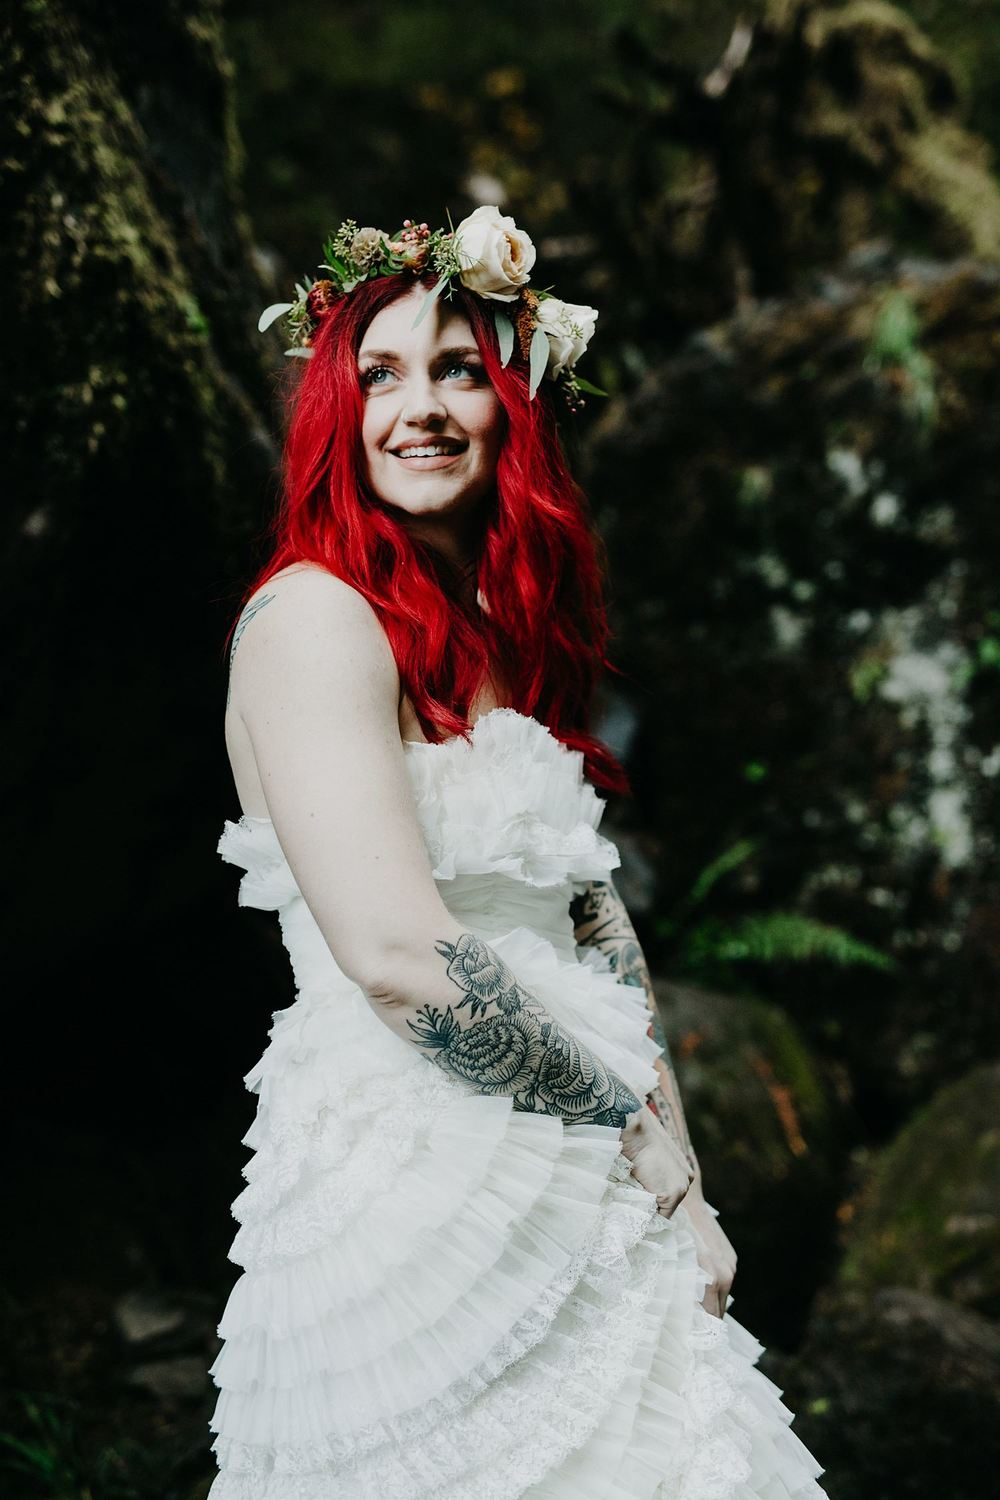 floral crown vintage wedding.jpg